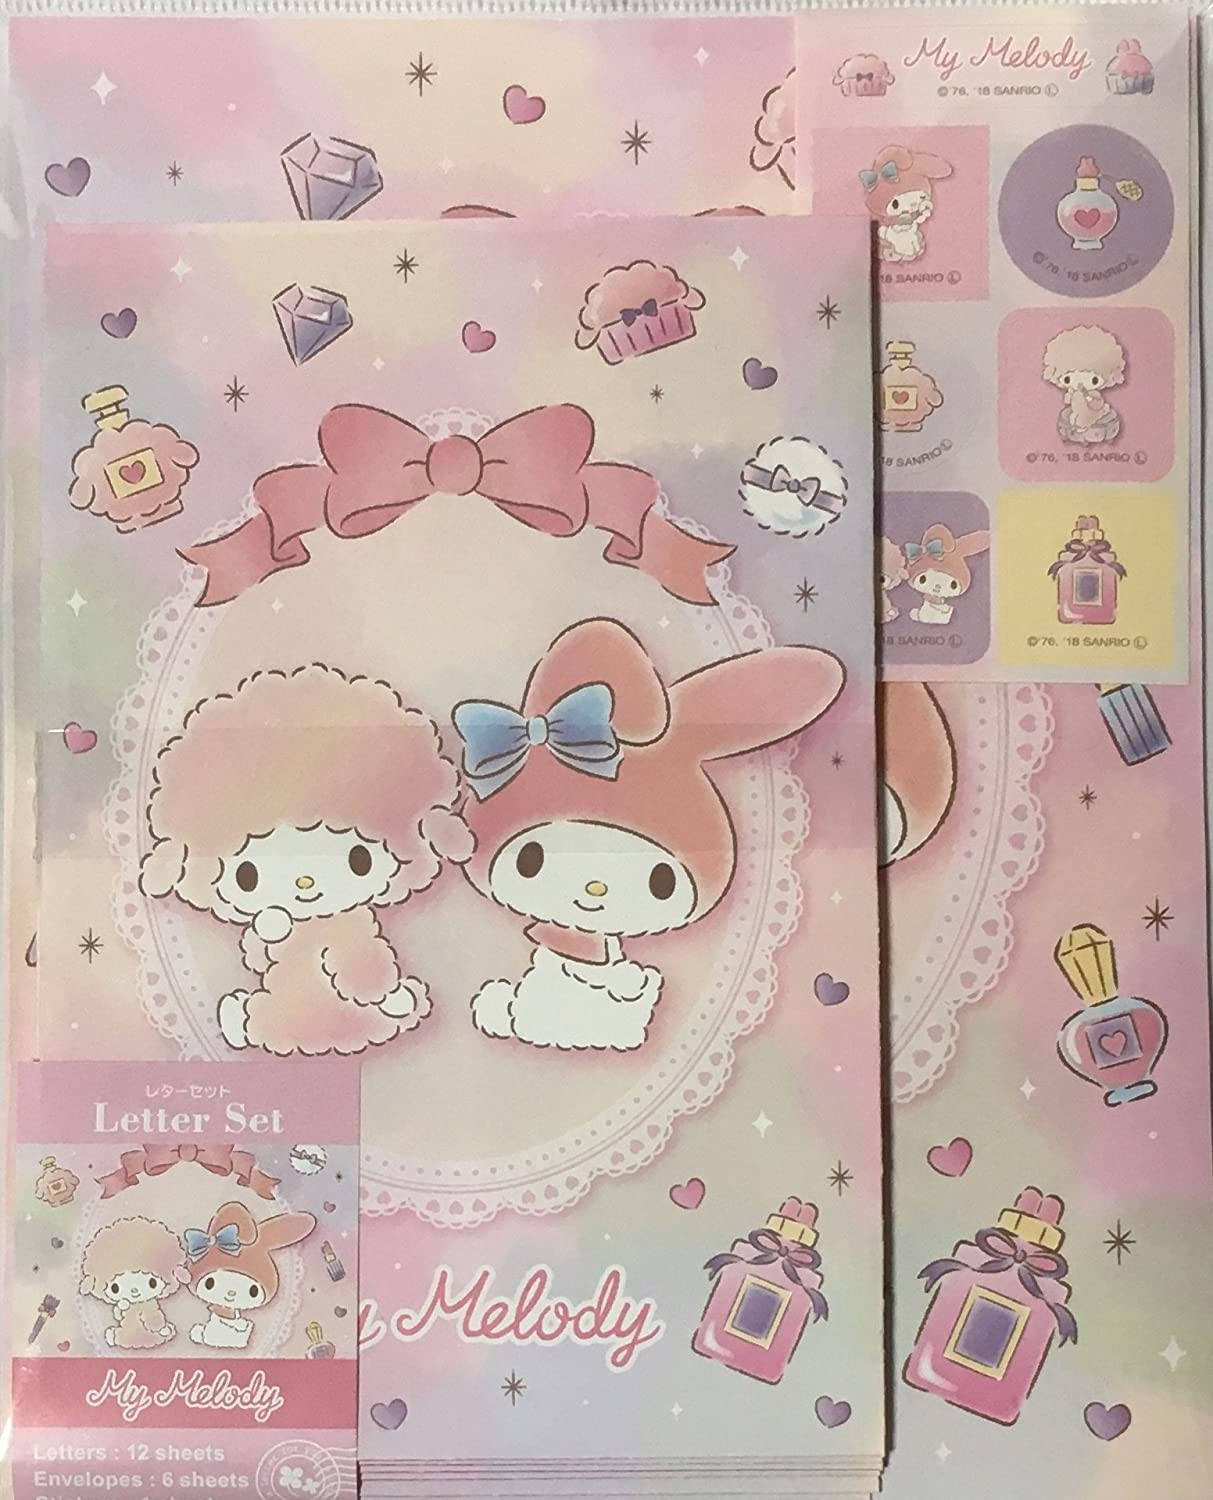 Hello Kitty Letter Set Sanrio Stationery Letters Envelopes And Stickers NEW